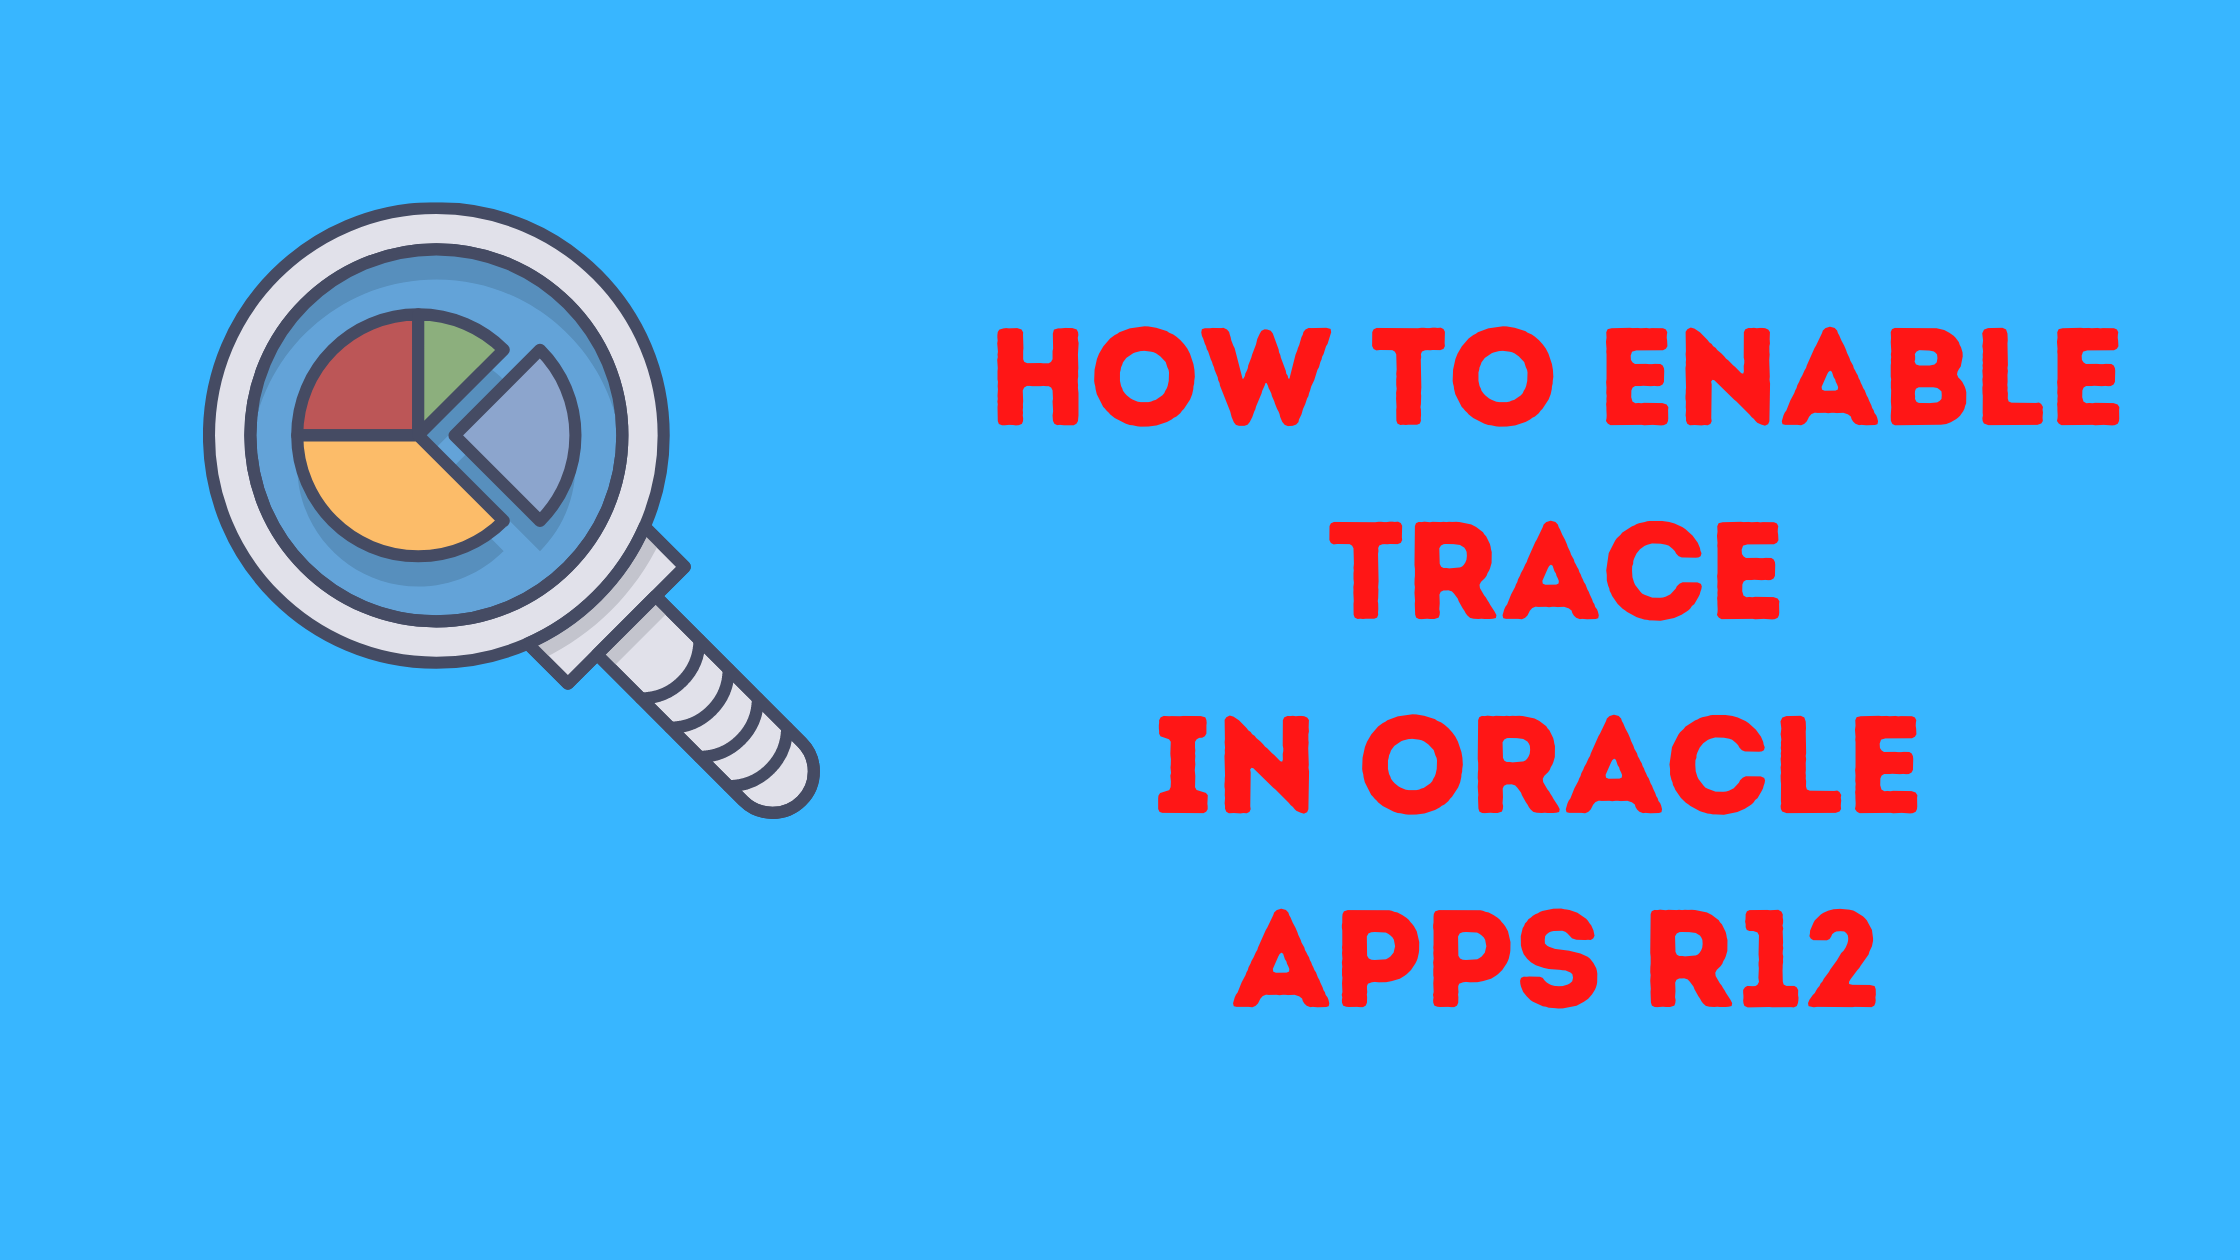 how to enable trace in oracle apps r12